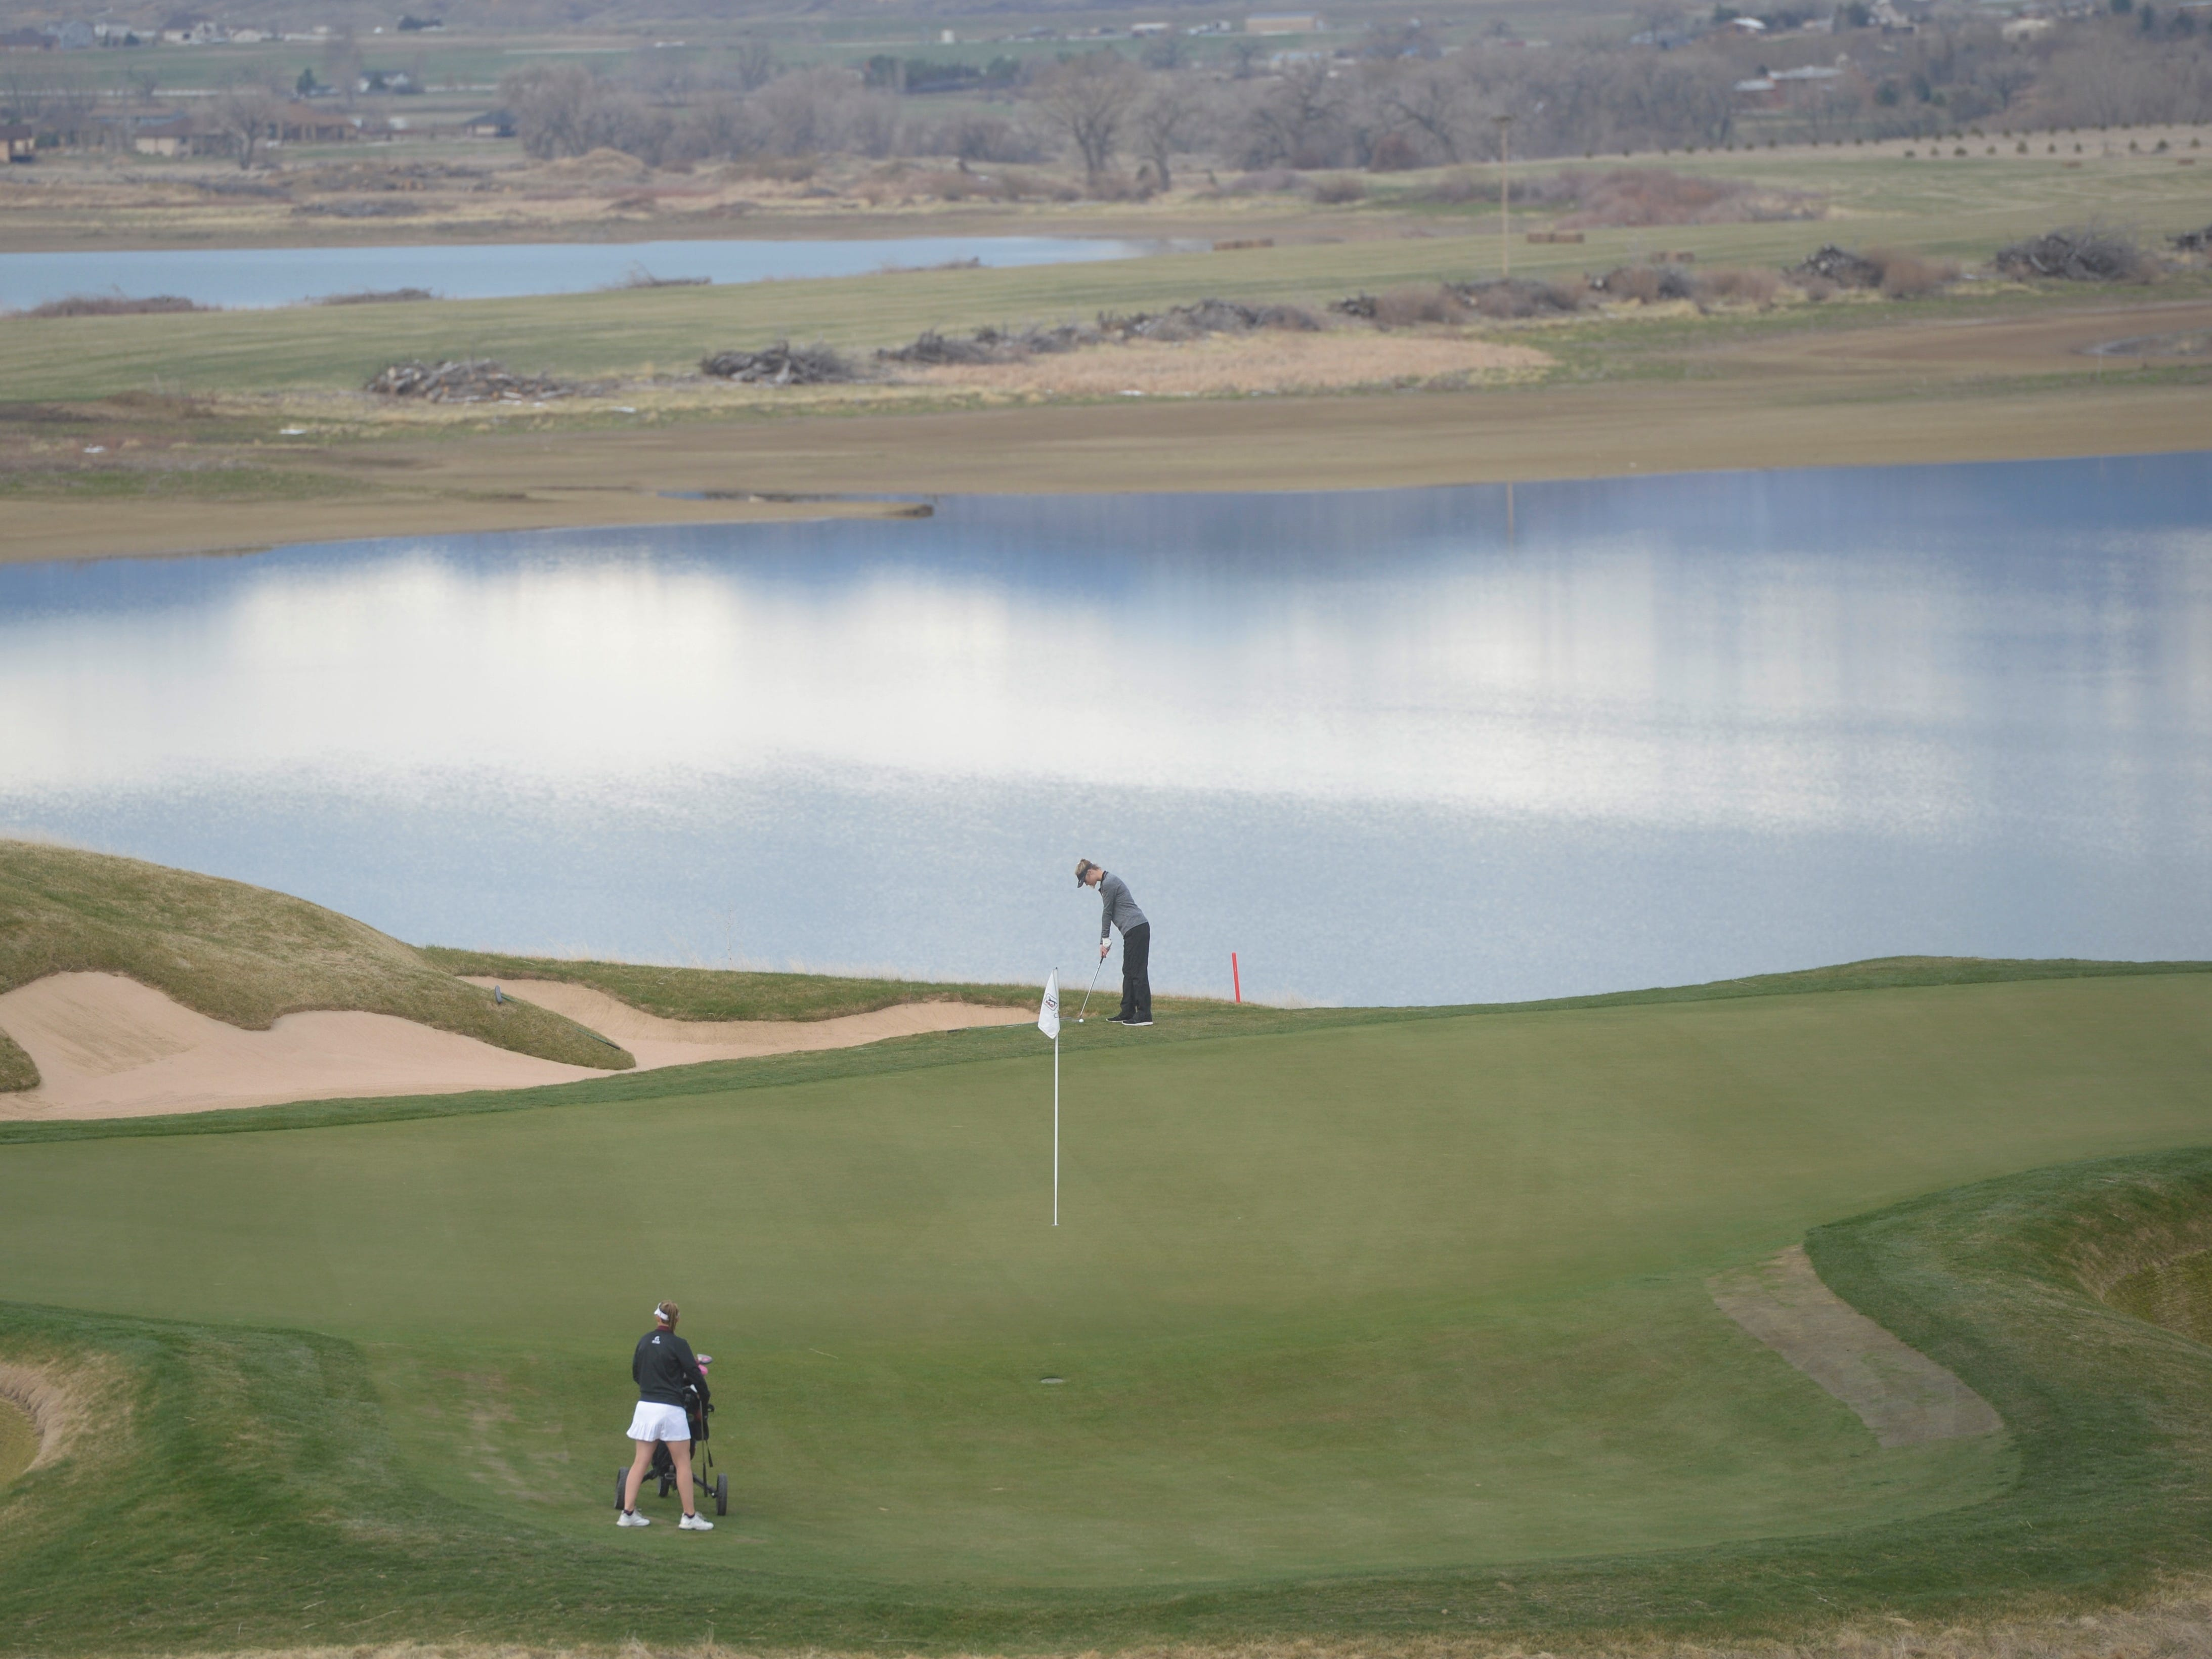 Golfers hit on hole No. 16 at the Tri-Valley League match at TPC Colorado in Berthoud on Monday, April 15. Windsor won the event. It's the first Tournament Players Club course in the state.